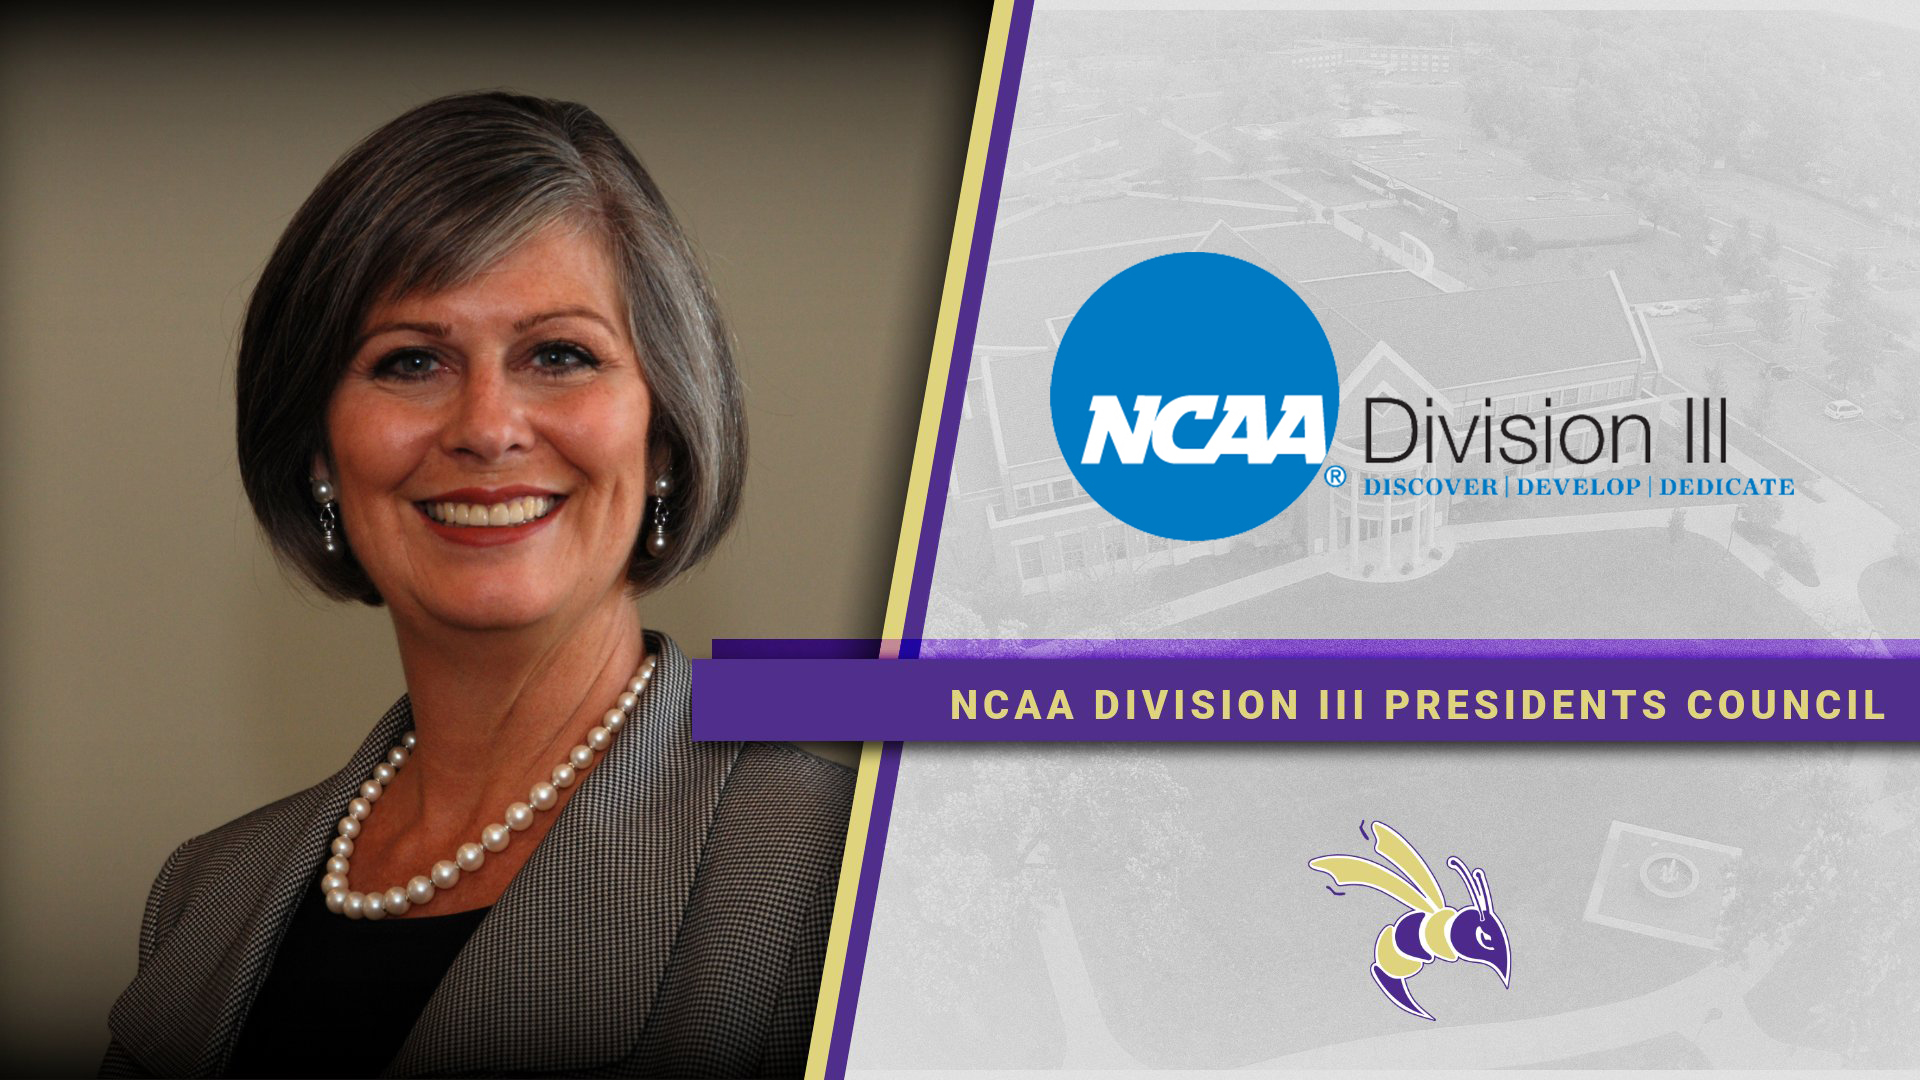 President Mankey Named to NCAA Division III Presidents Council